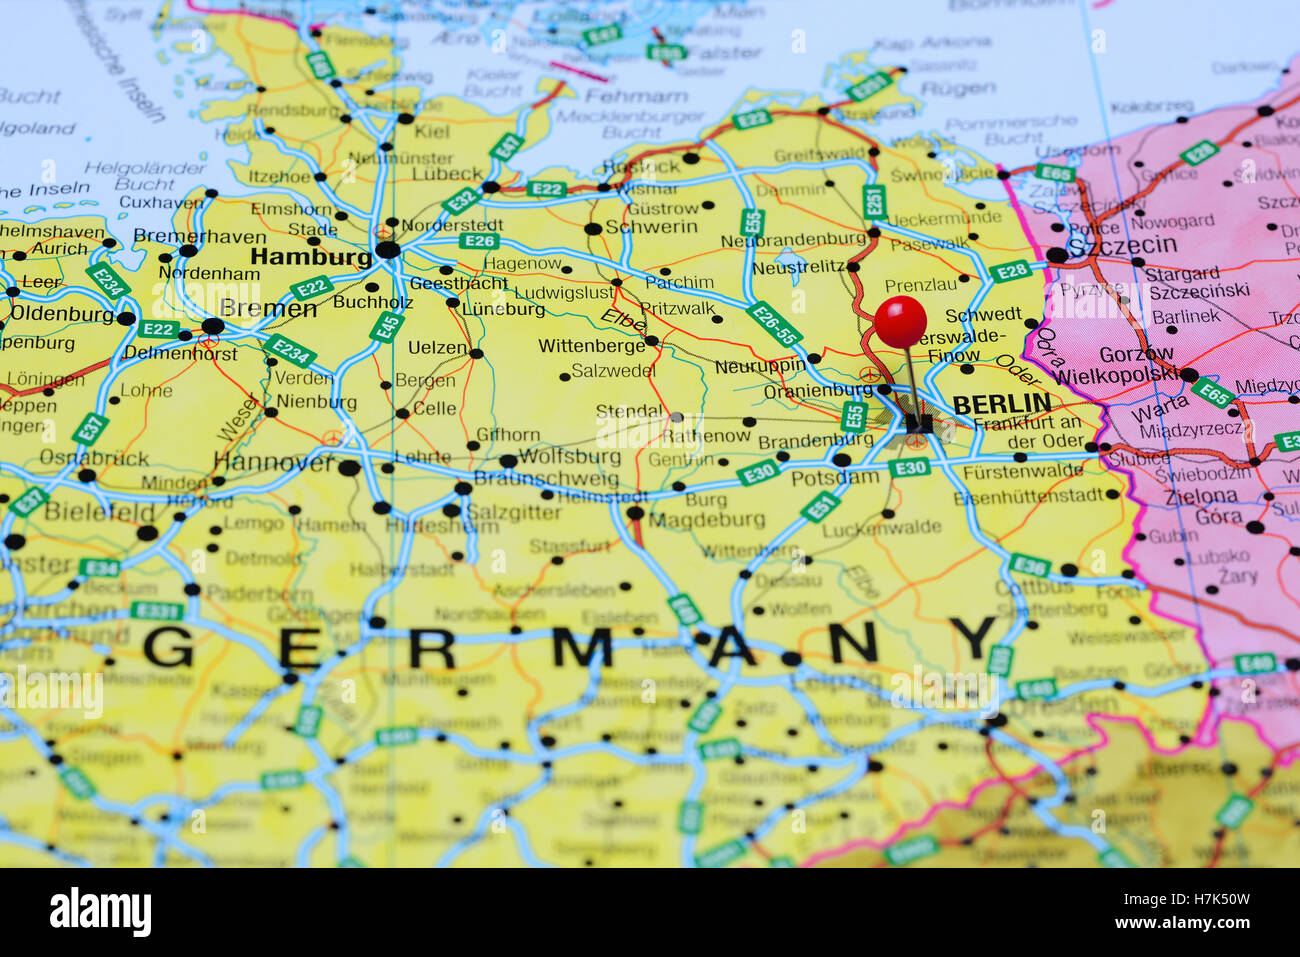 Berlin pinned on a map of germany stock photo 125196201 alamy berlin pinned on a map of germany gumiabroncs Image collections